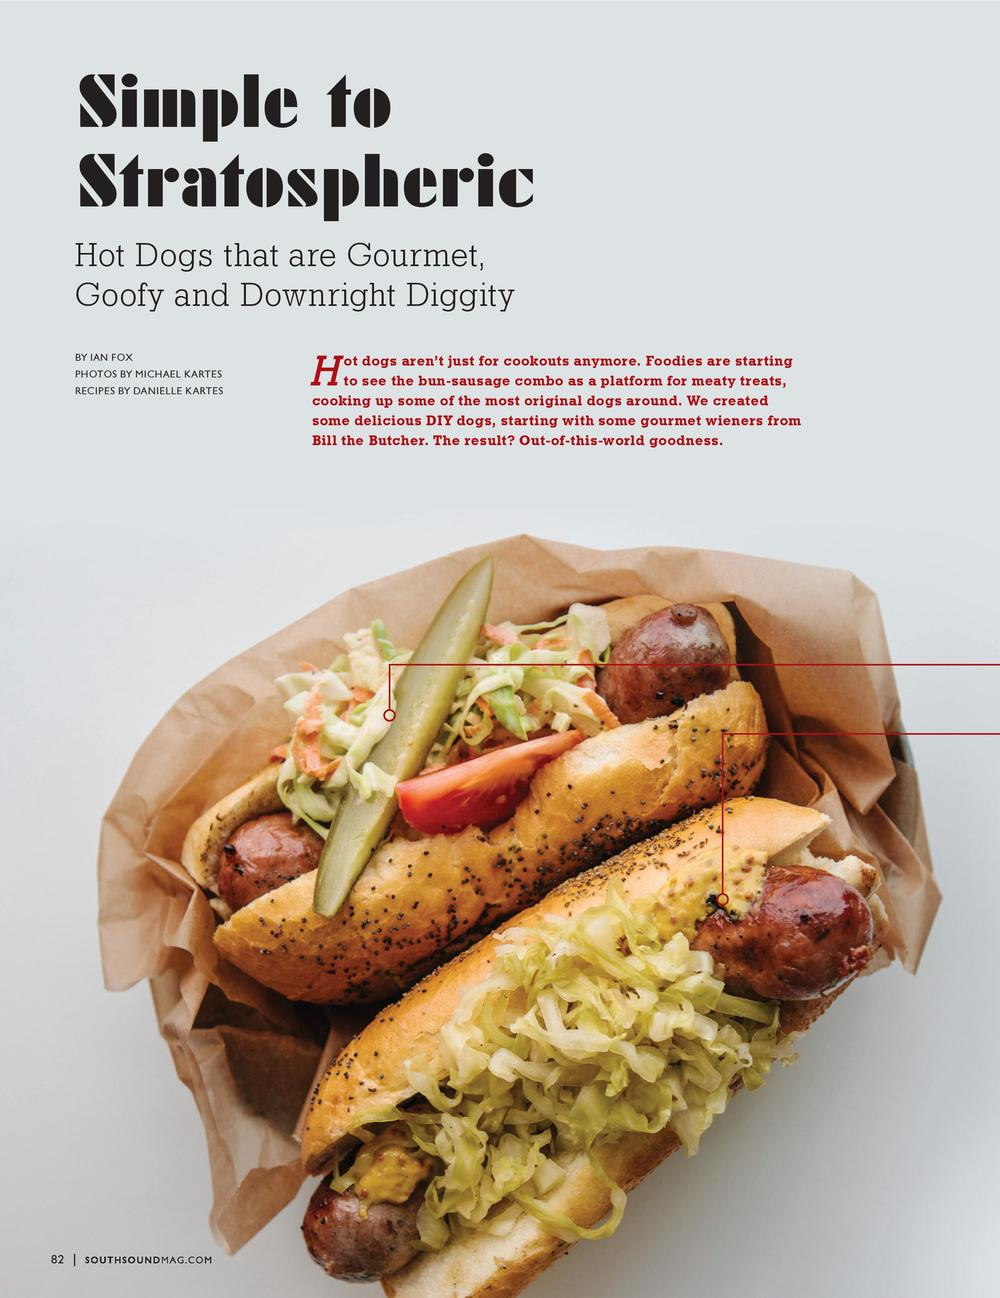 SS_14_JunJul_hotdog_pg82-86_+cover_LowRes-page-002.jpg